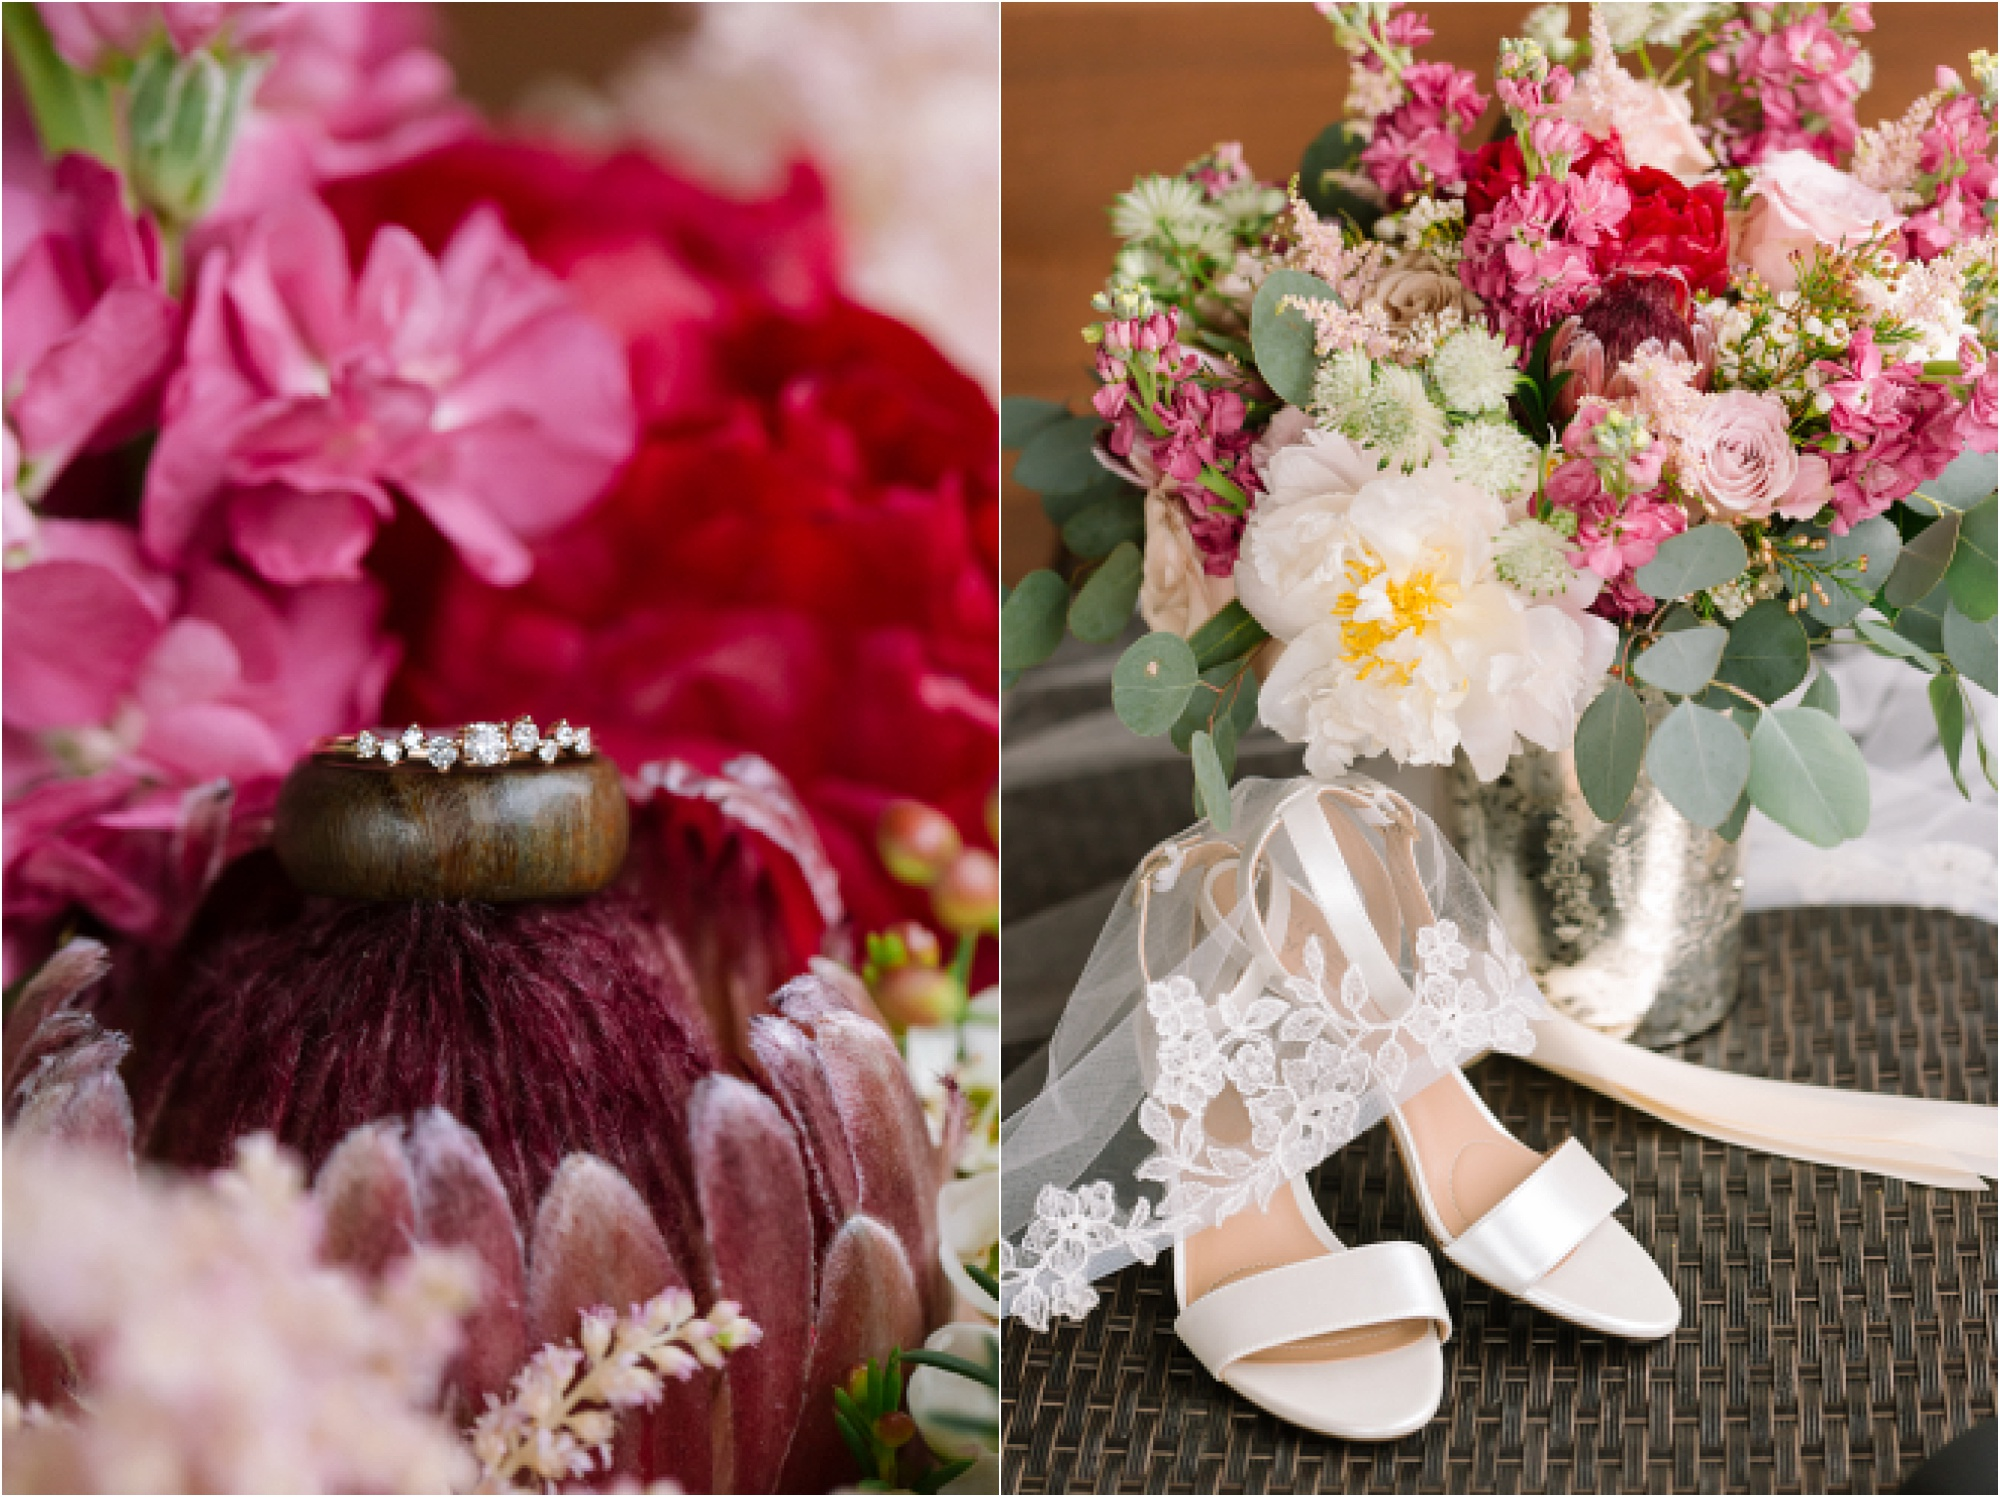 bright pink wedding flowers and bridal details